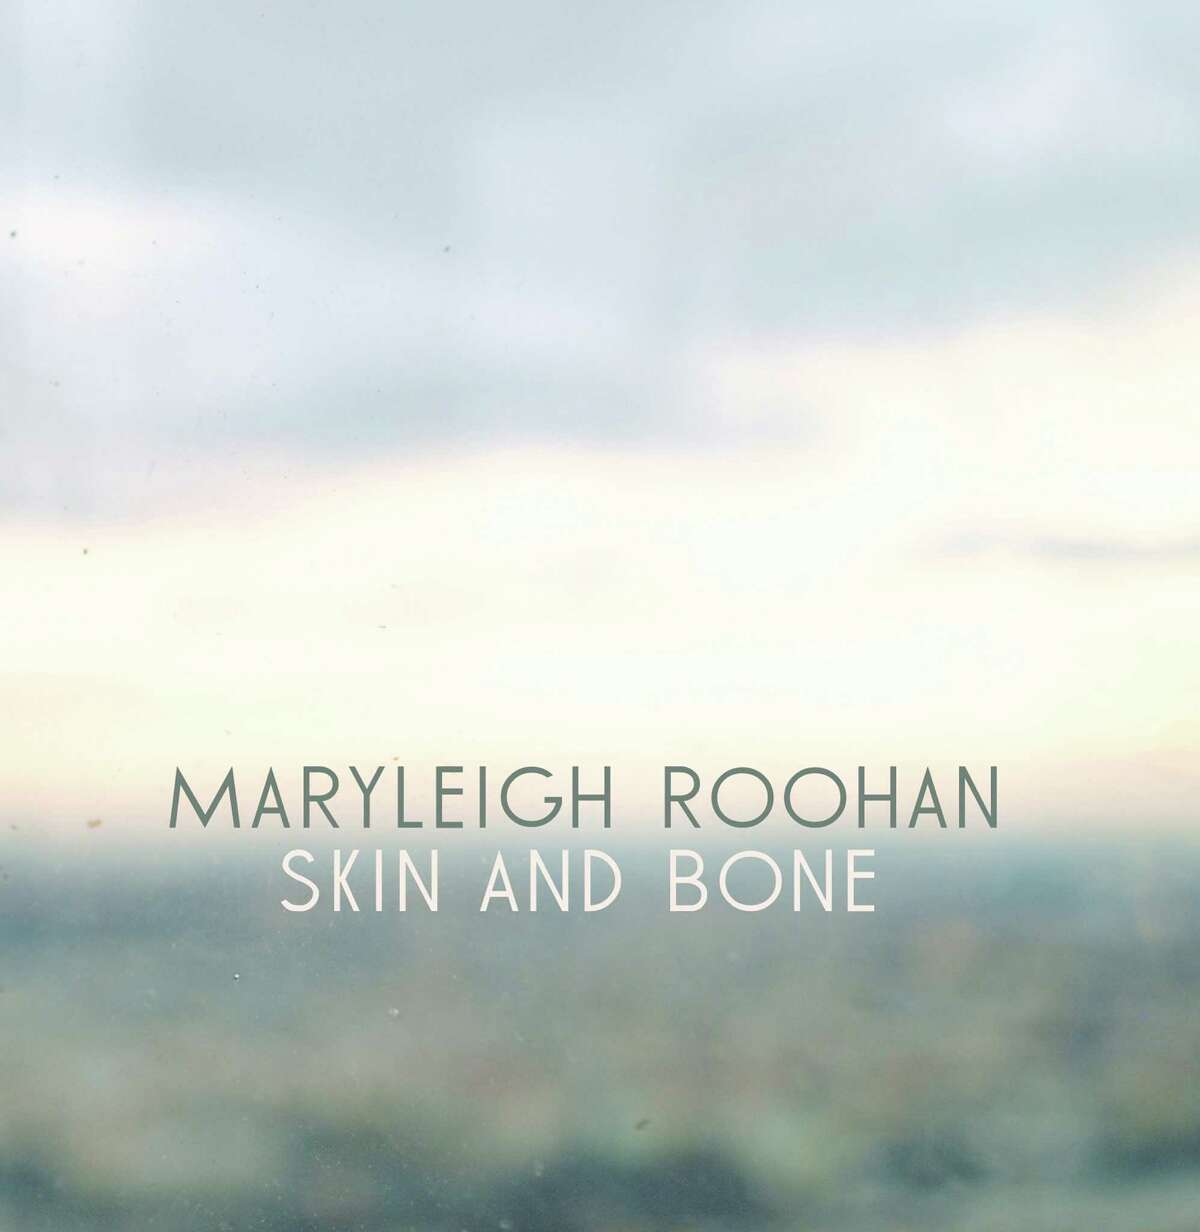 MaryLeigh Roohan's